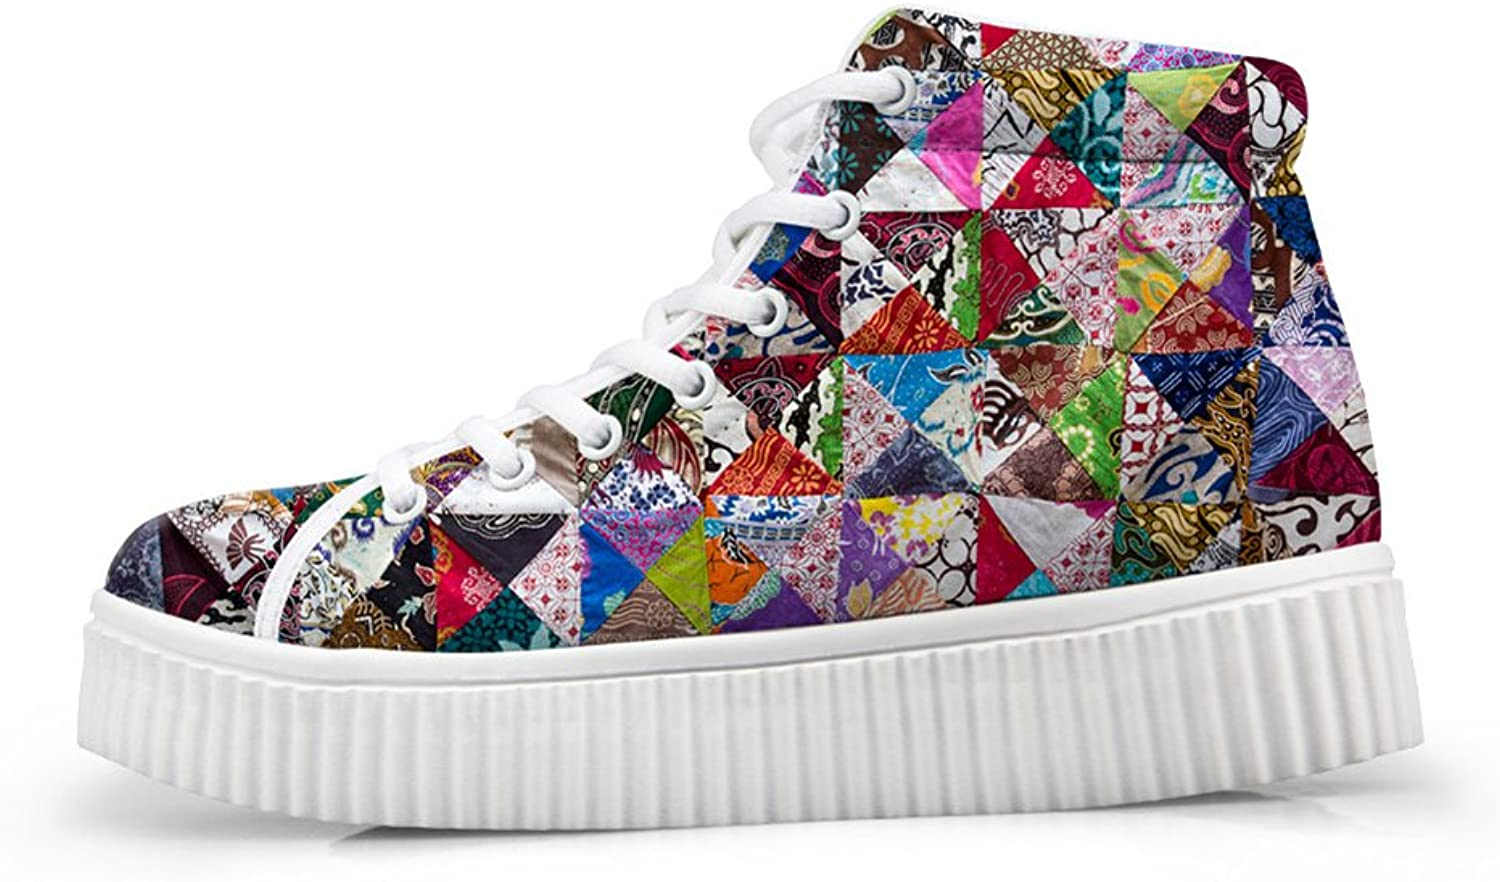 Mumeson Geometric Patchwork Print Women Casual shoes Platform Sneaker US 5